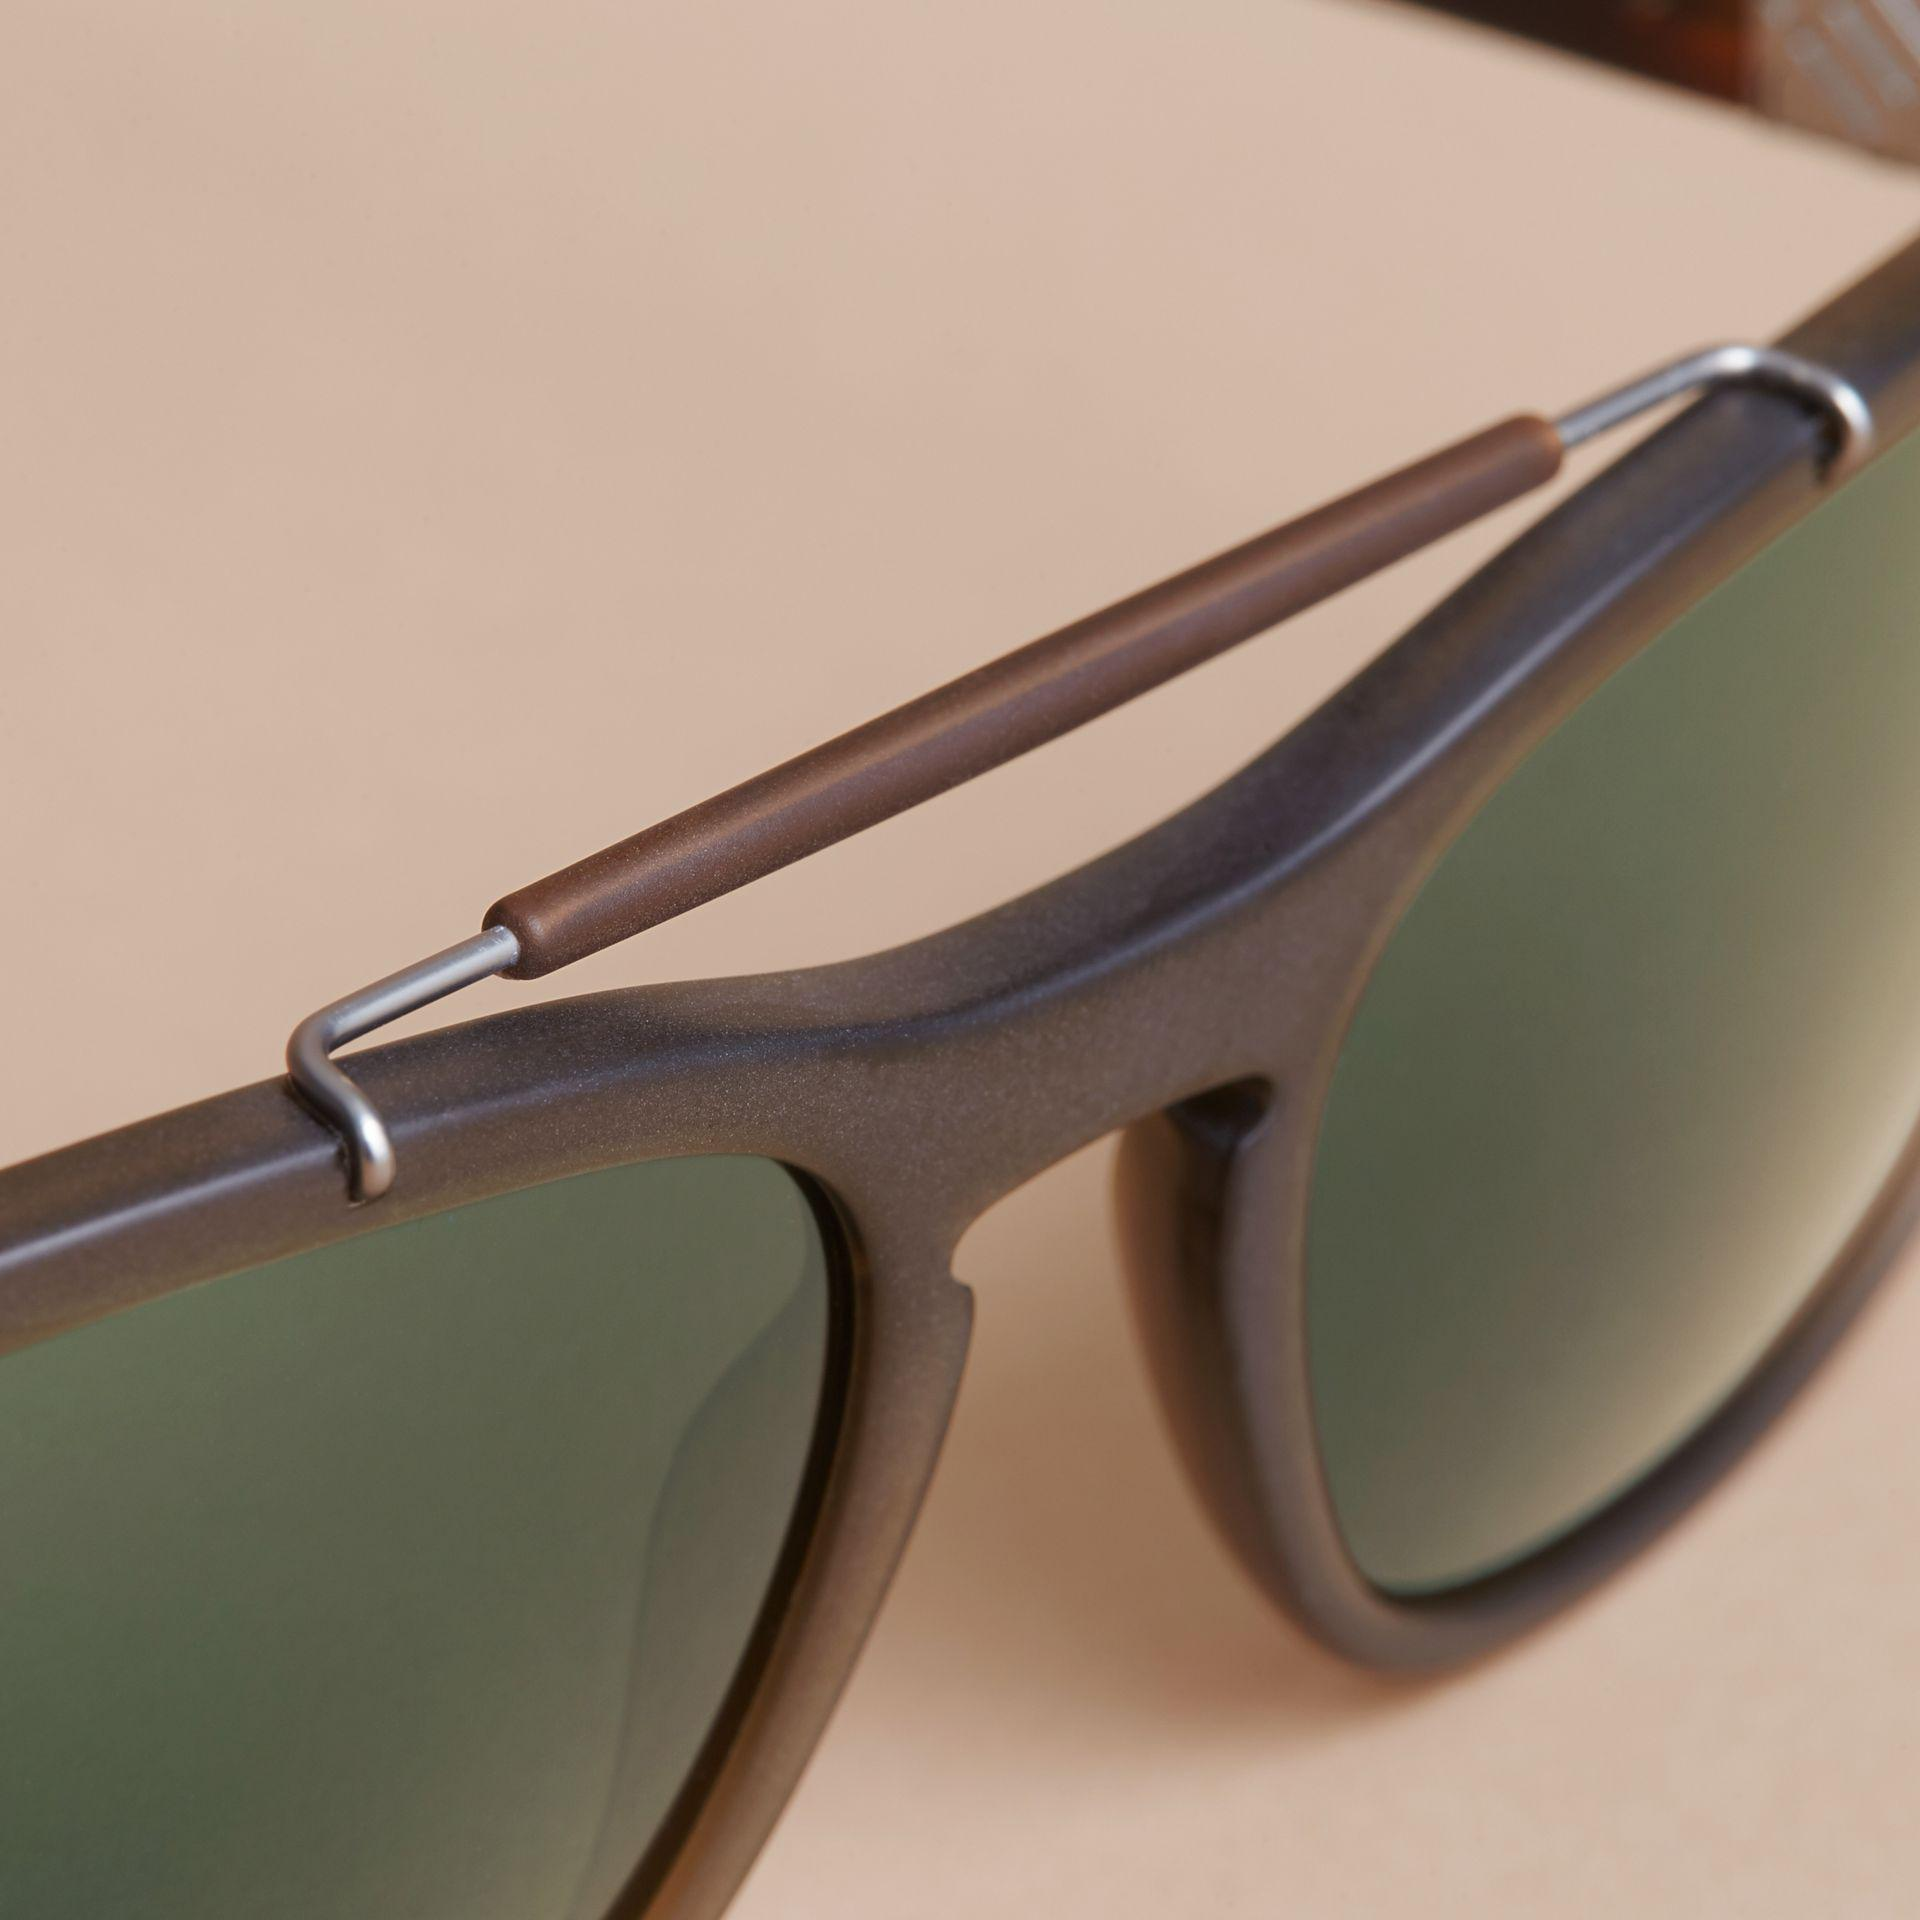 8732f9a2cfe4 Lyst - Burberry Top Bar Square Frame Sunglasses Olive in Green for Men